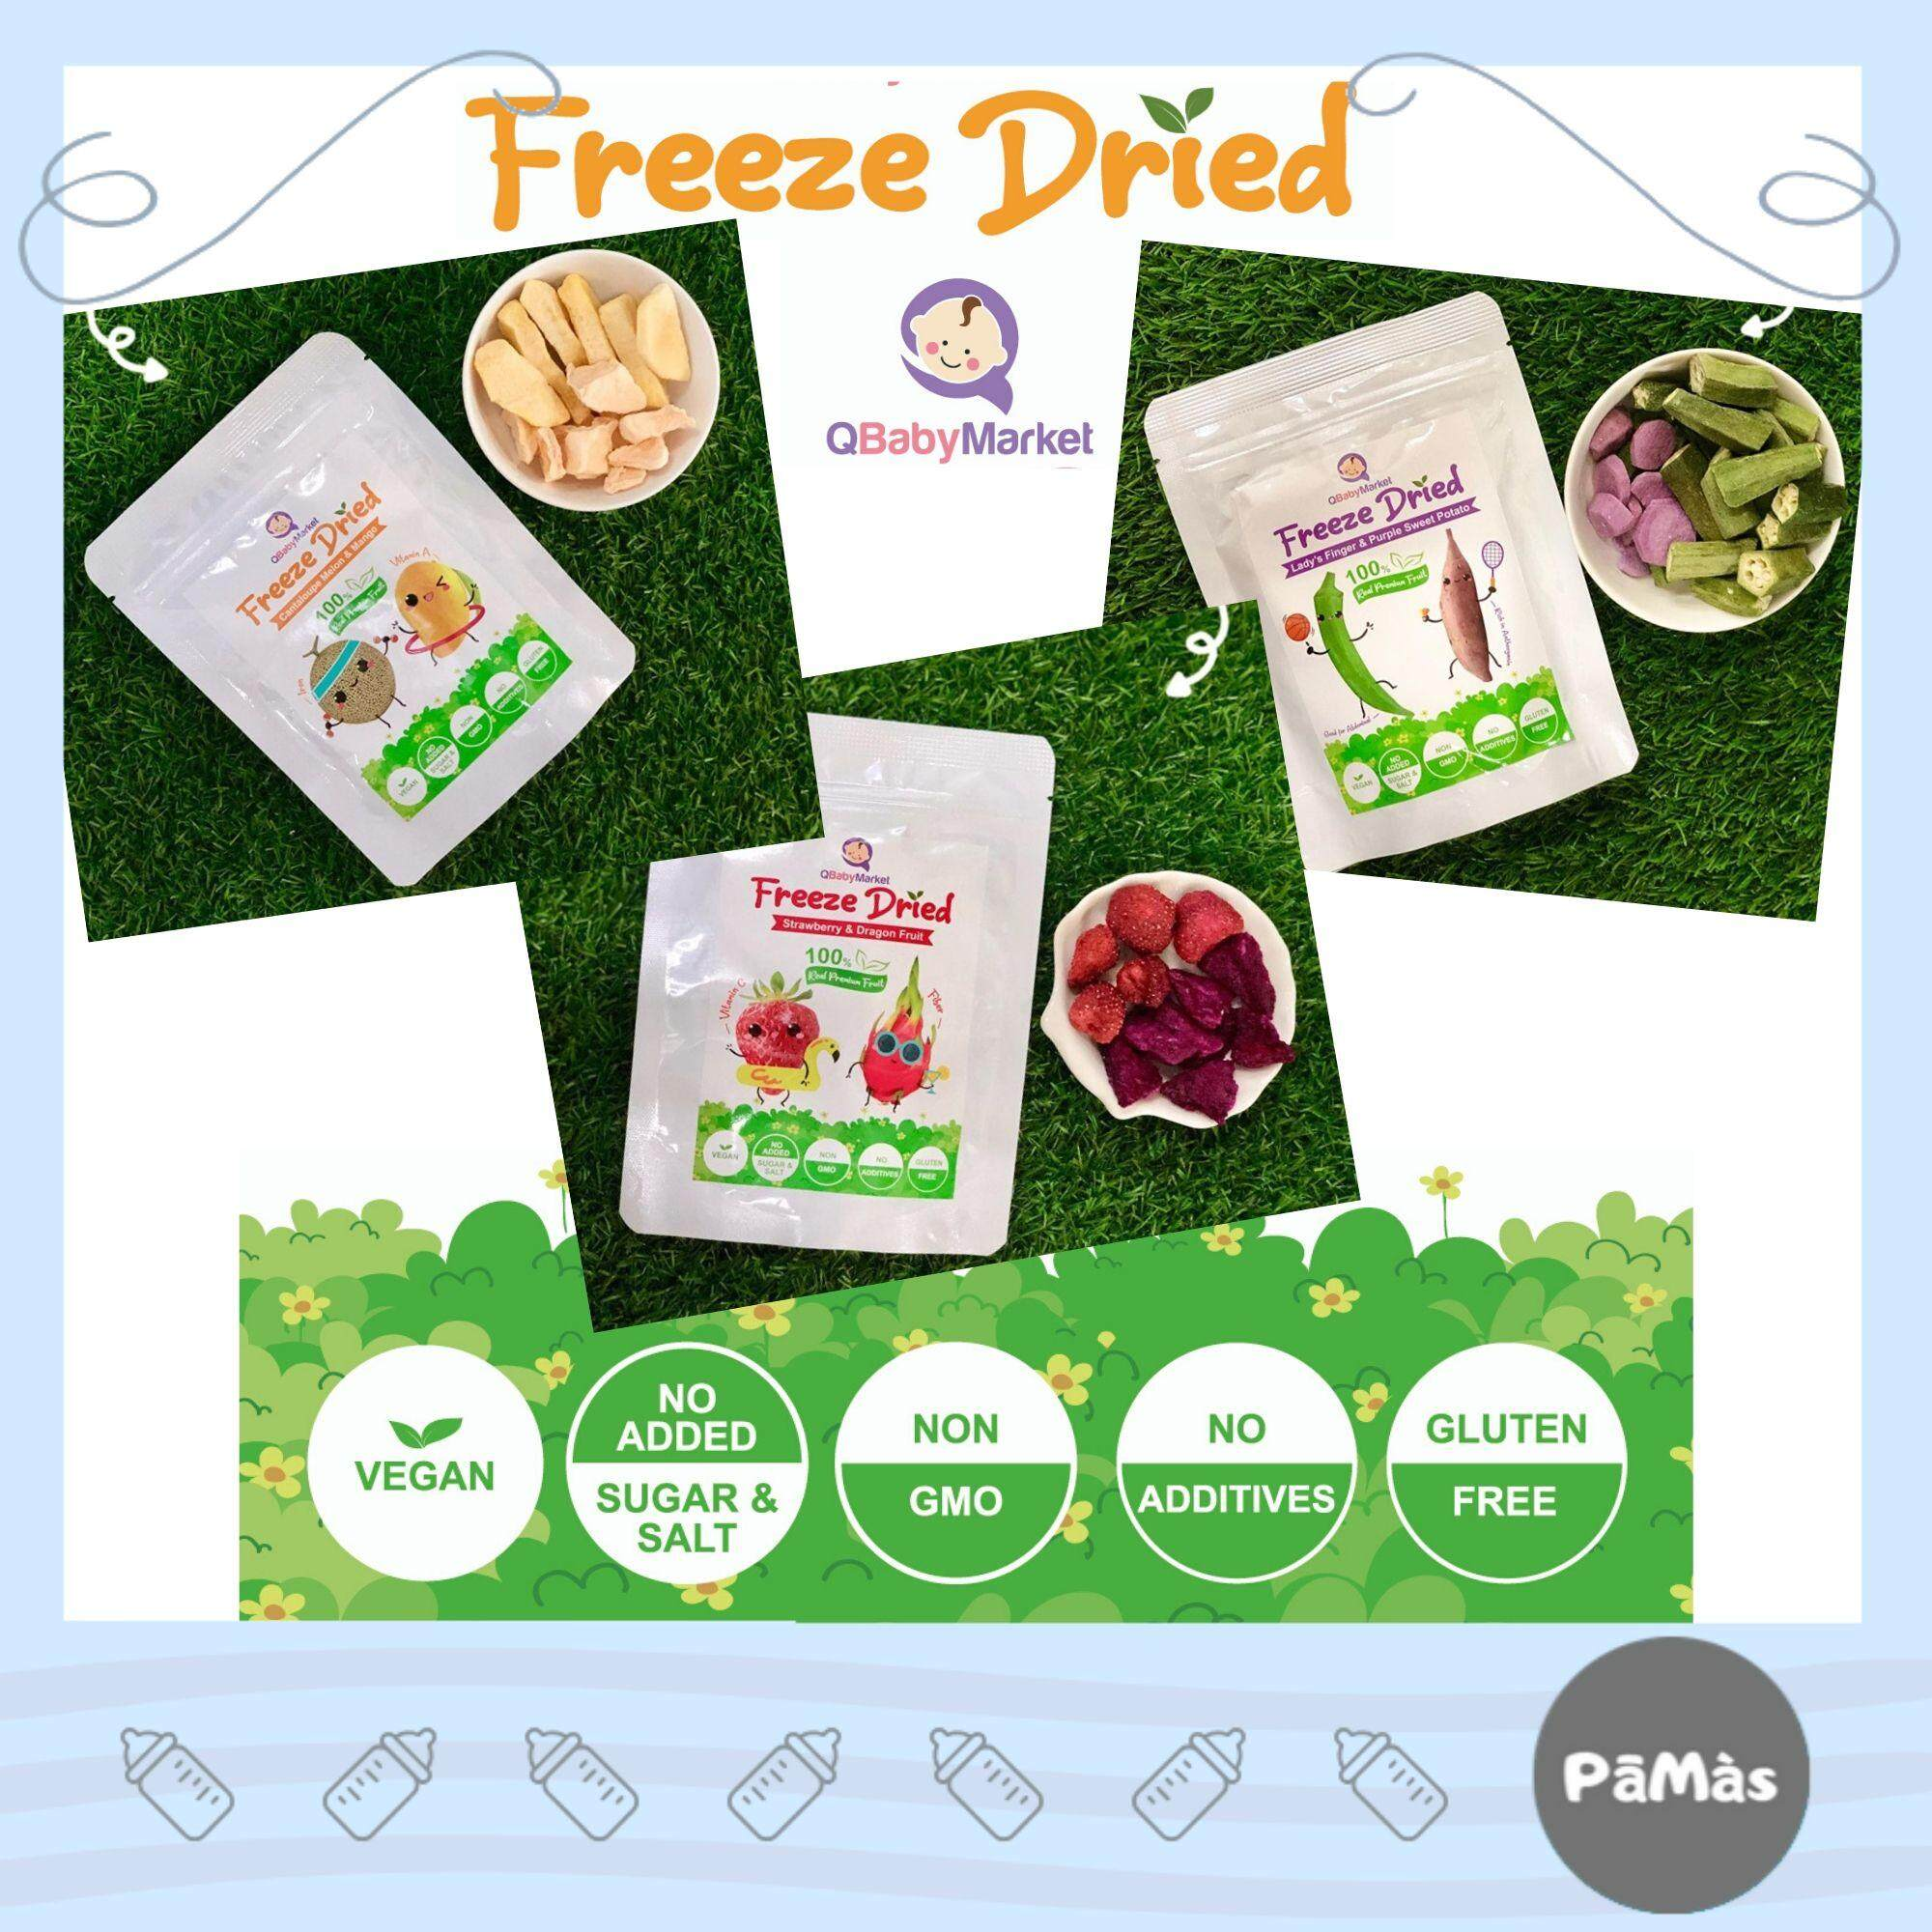 QBabyMarket 宝宝冻干蔬菜水果Freeze Dried Fruit/Vege Healthy Snack, 100%Natural Real Fruit/Vege,Freeze Dried Healthy Snack, No Preservatives,Oil Free